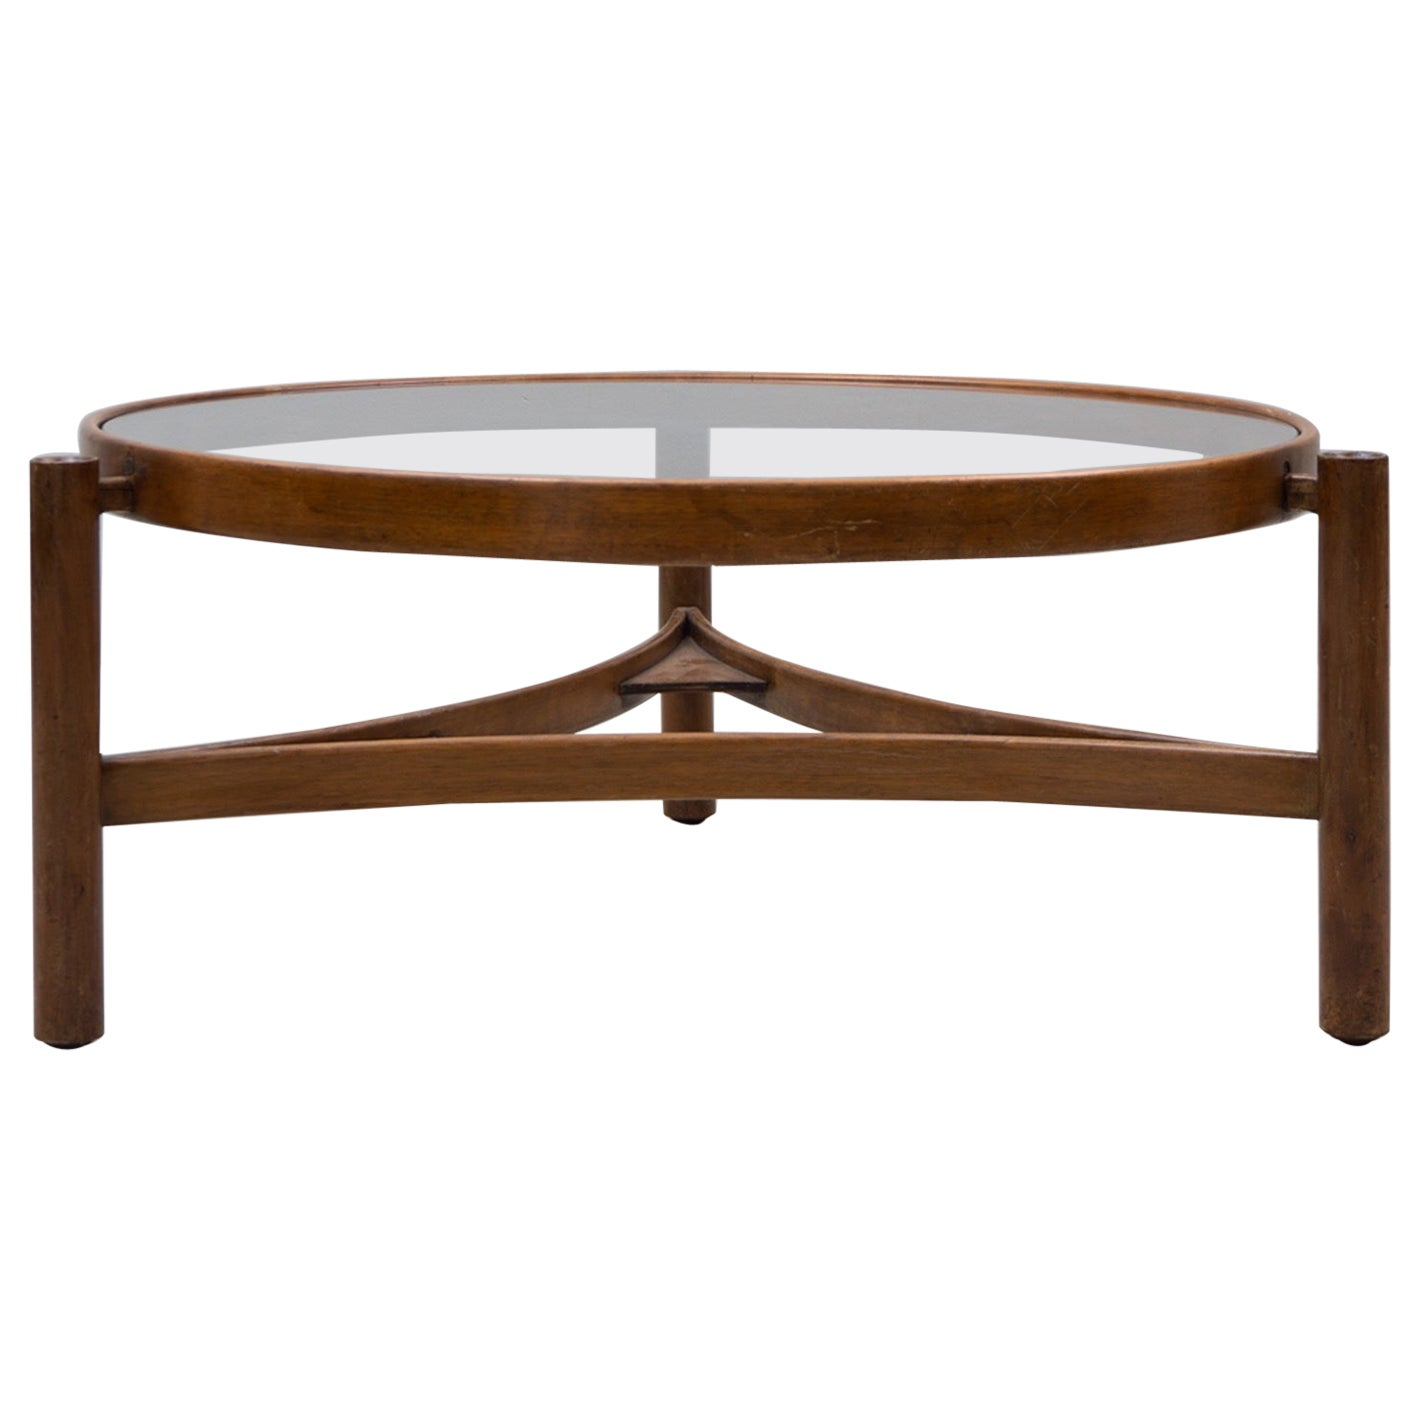 Low Table / Sidetable, Made of Walnut, by Gianfranco Frattini, 1958